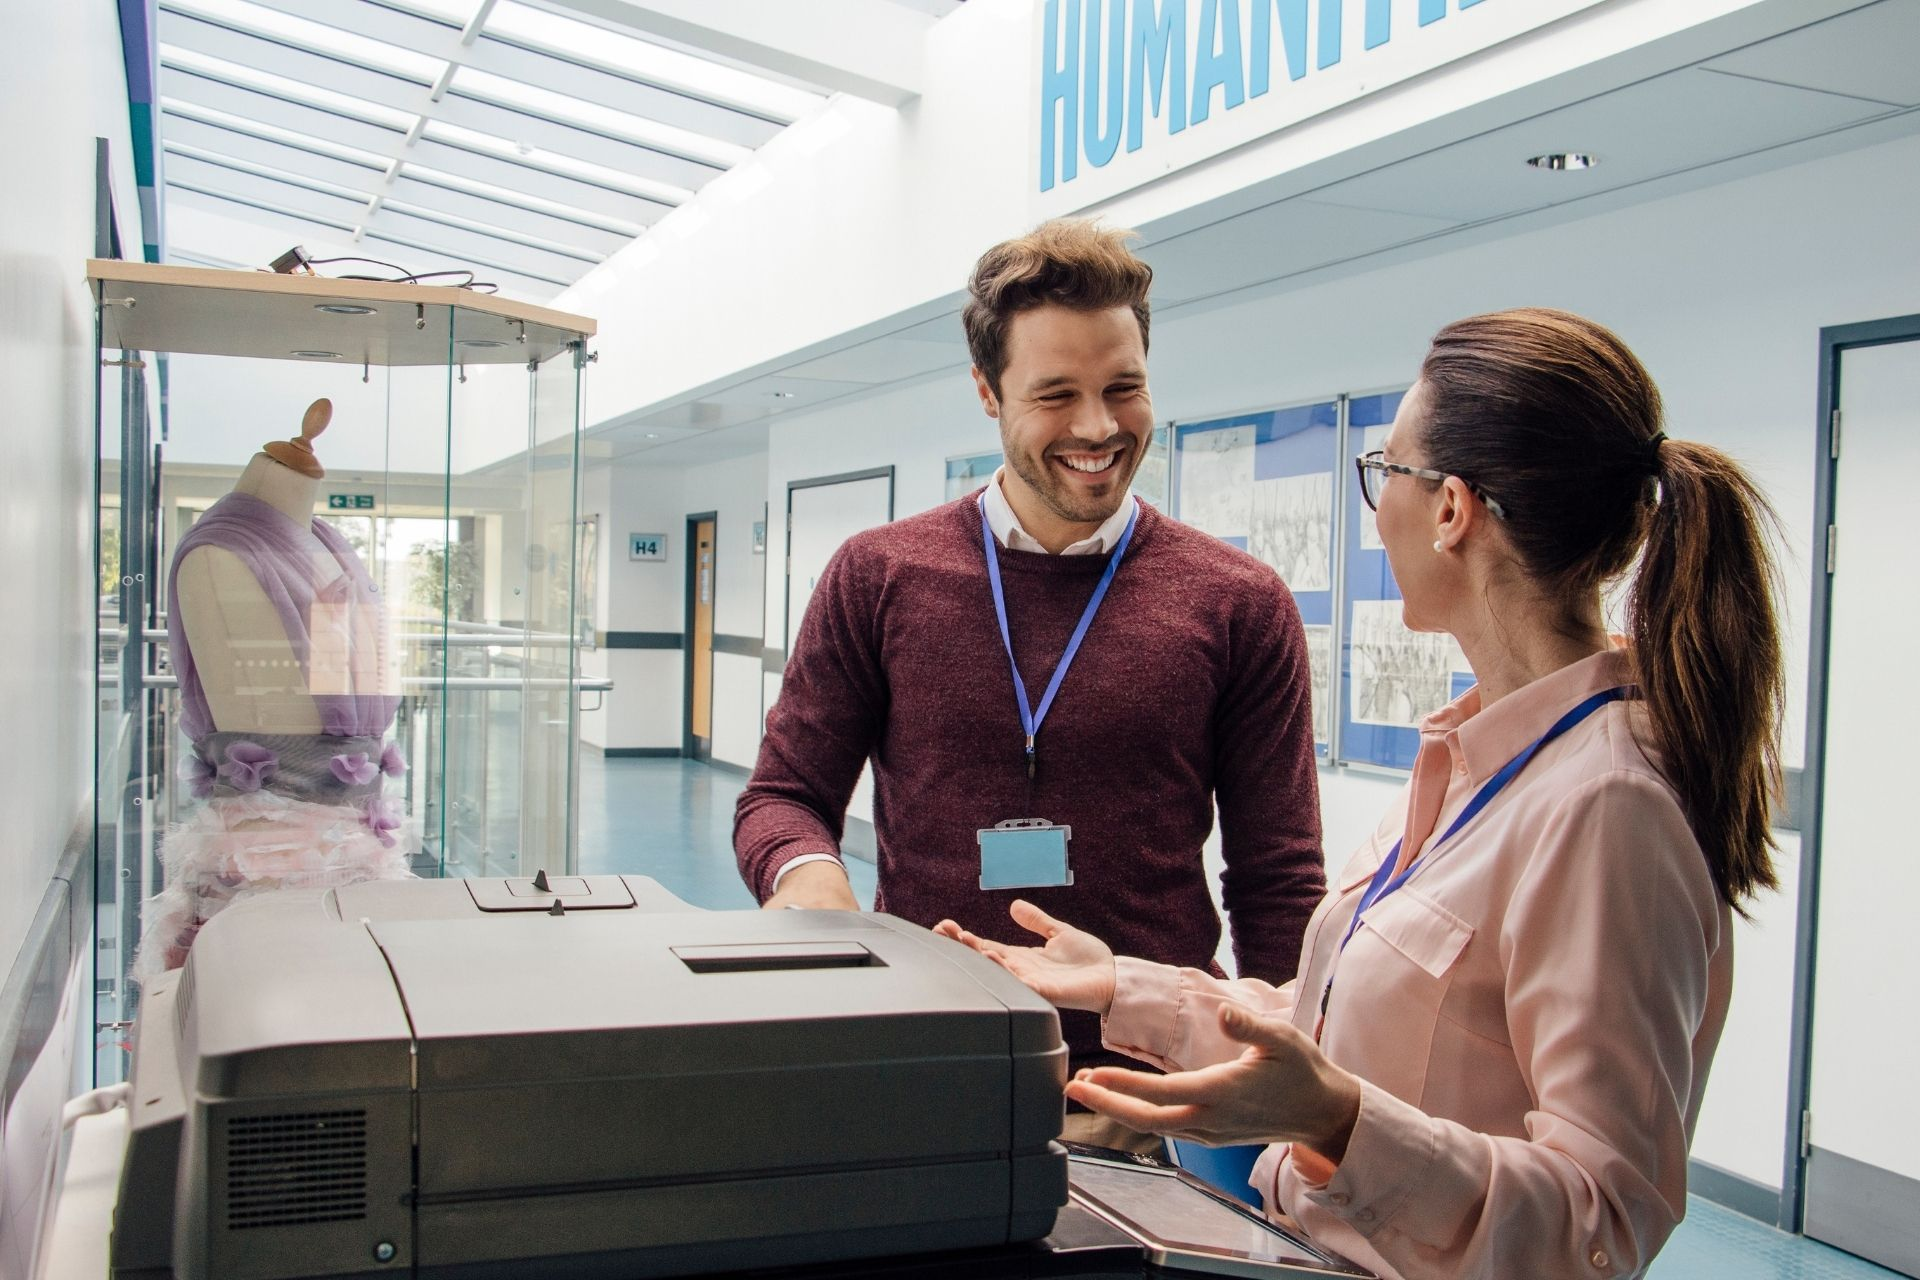 Two people standing next to a copier machine